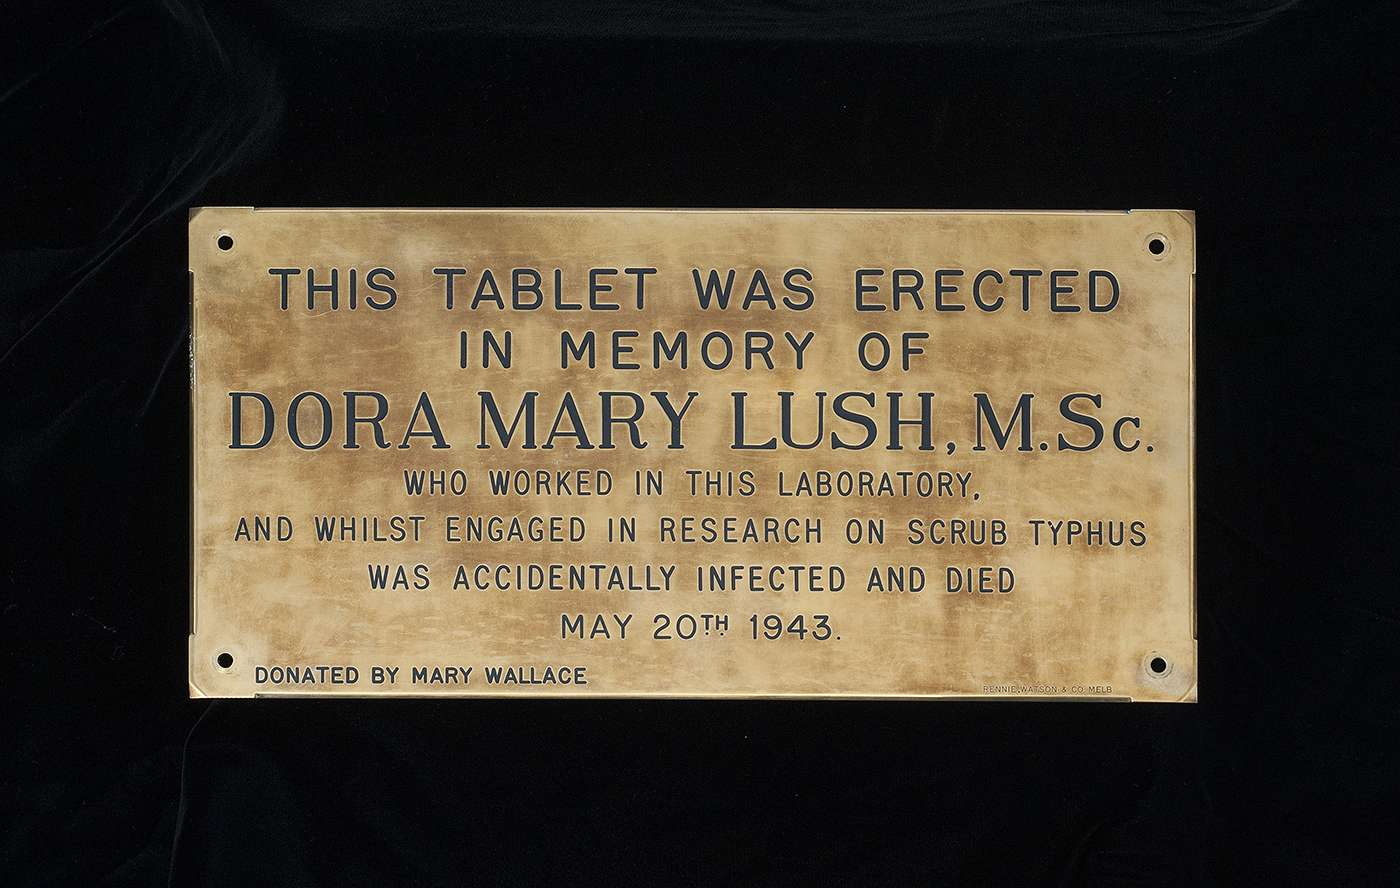 Plaque dedicated to the memory of Dora Lush (donated by Mary Wallace).